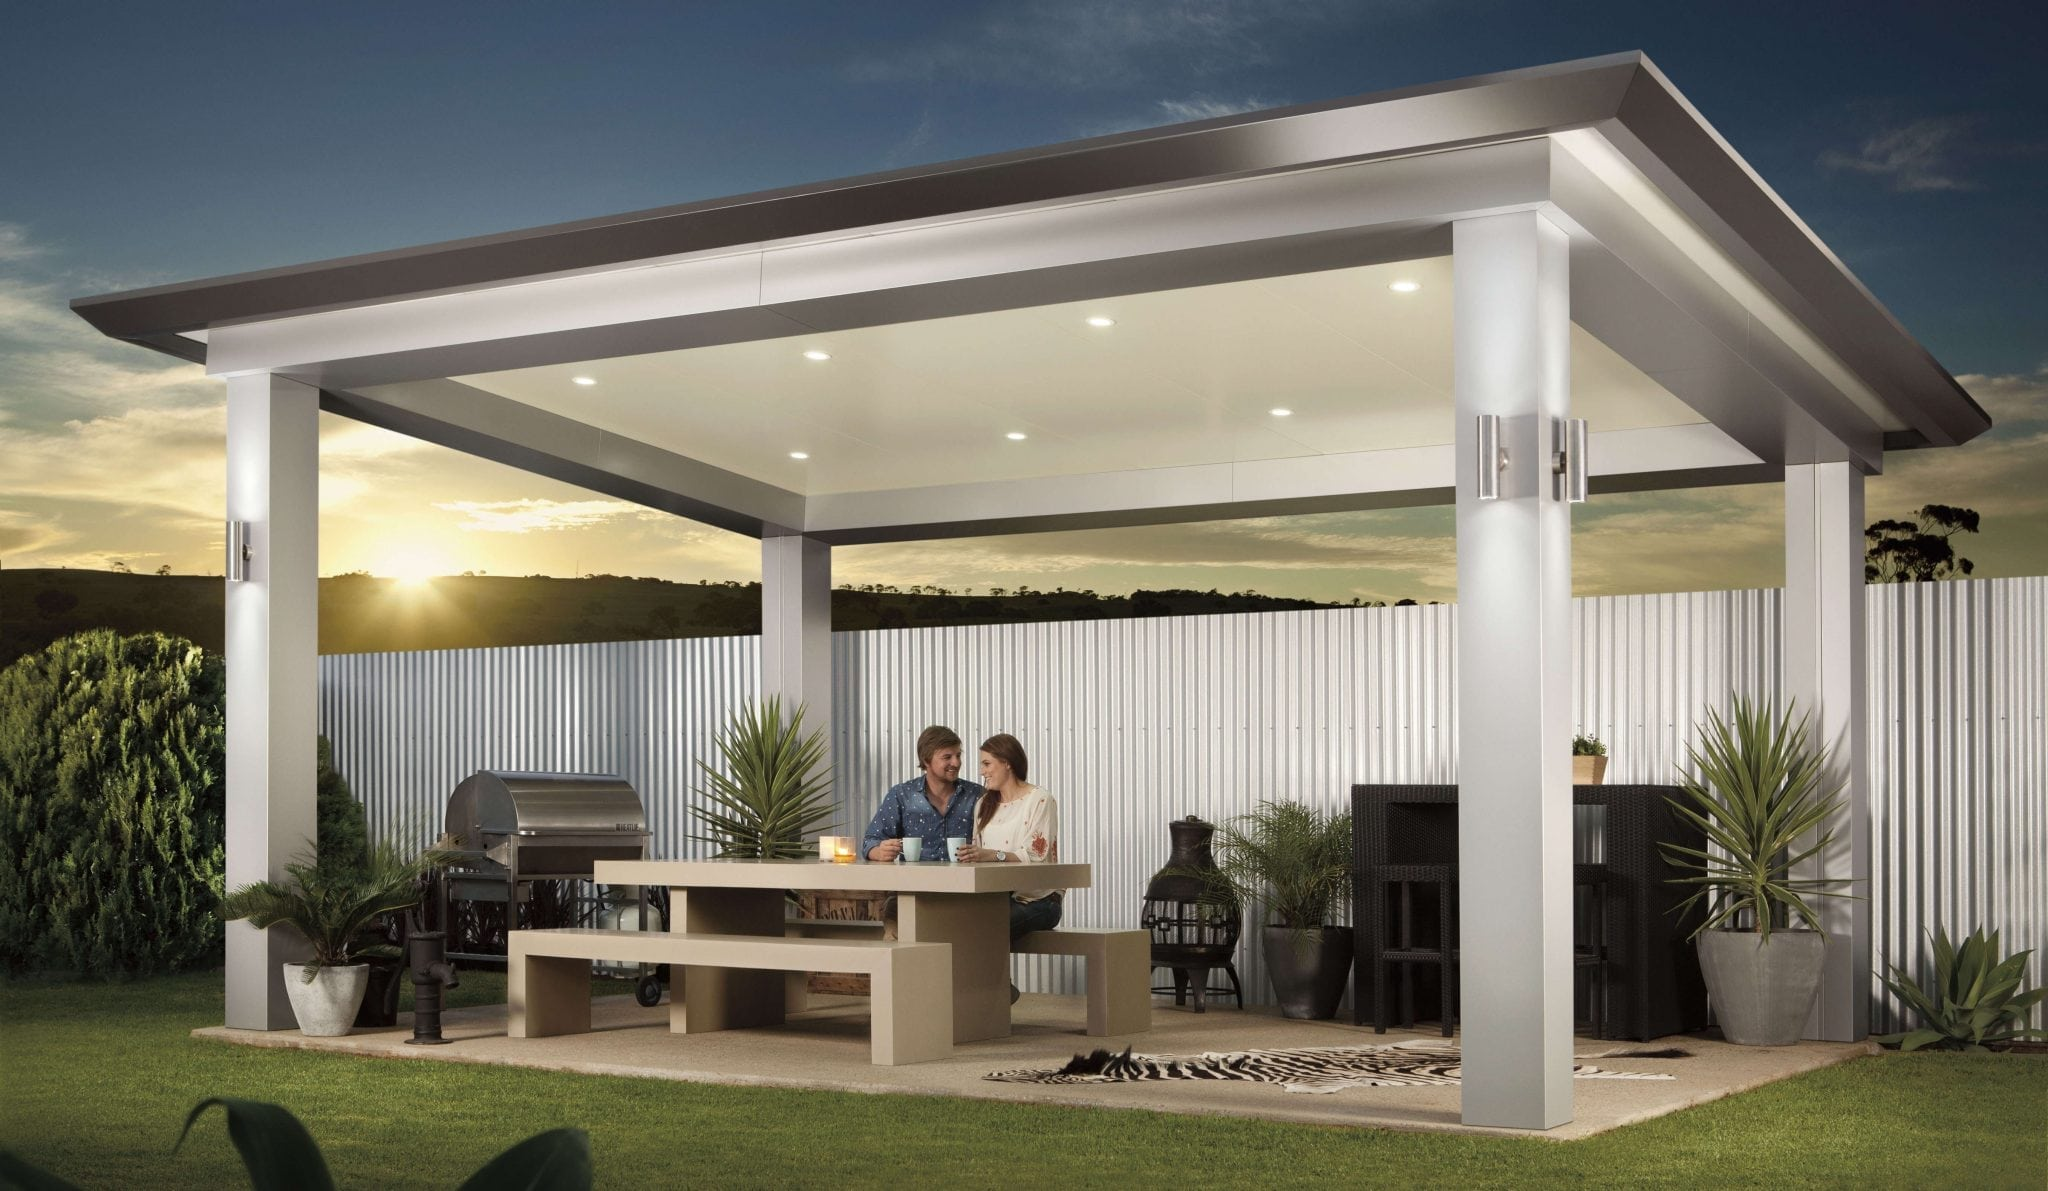 Stratco pavilion alfresco pergola for Pavilion style home designs